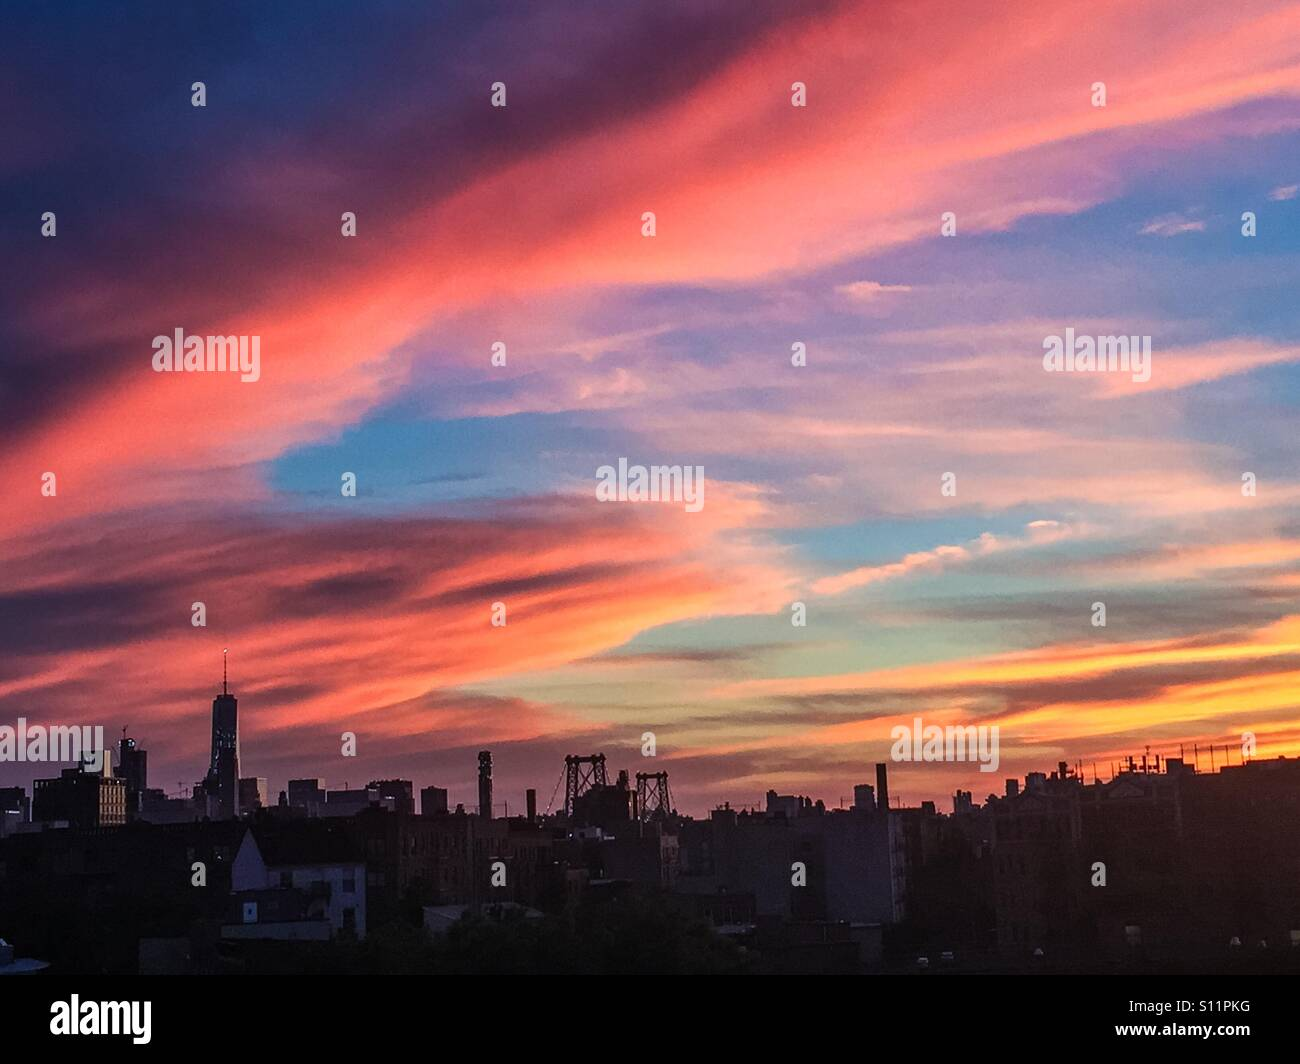 Superbe coucher de soleil sur la ville de New York de Williamsburg, Brooklyn. Banque D'Images